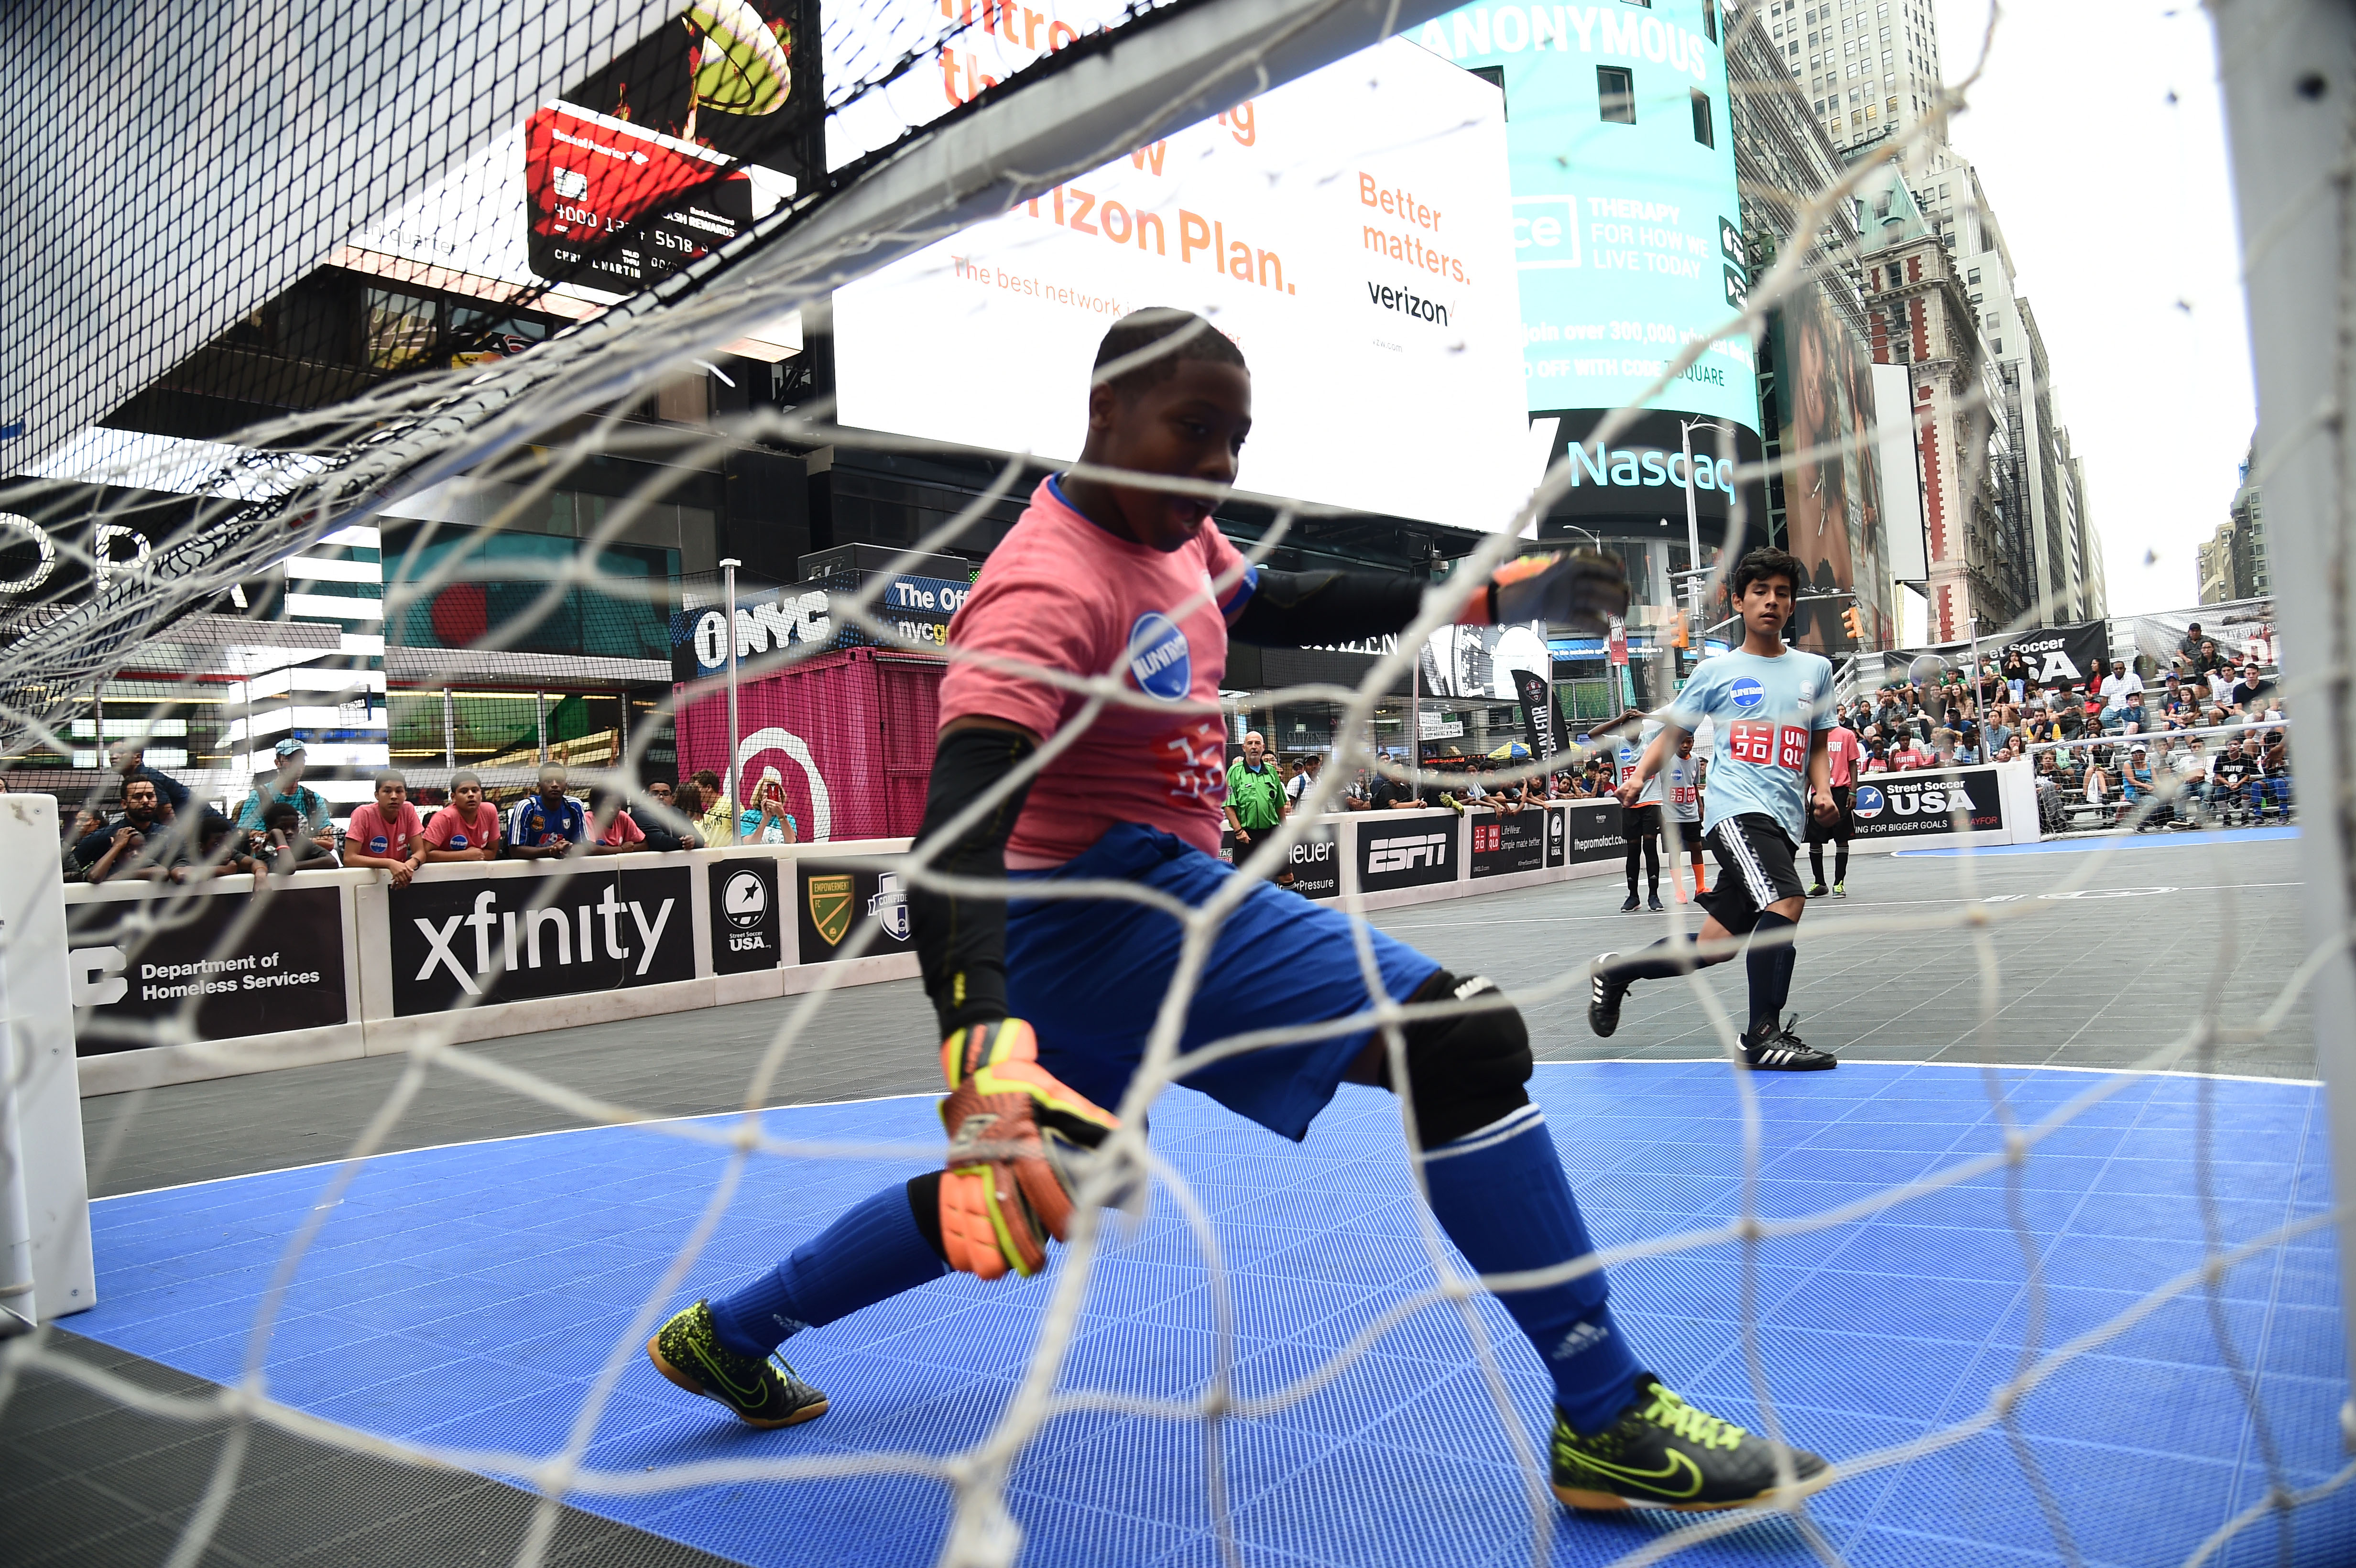 NEW YORK, NY - JULY 09:  General view of atmosphere during the Street Soccer USA Cup at Times Square on July 9, 2016 in New York City.  (Photo by Ilya S. Savenok/Getty Images for Street Soccer USA)